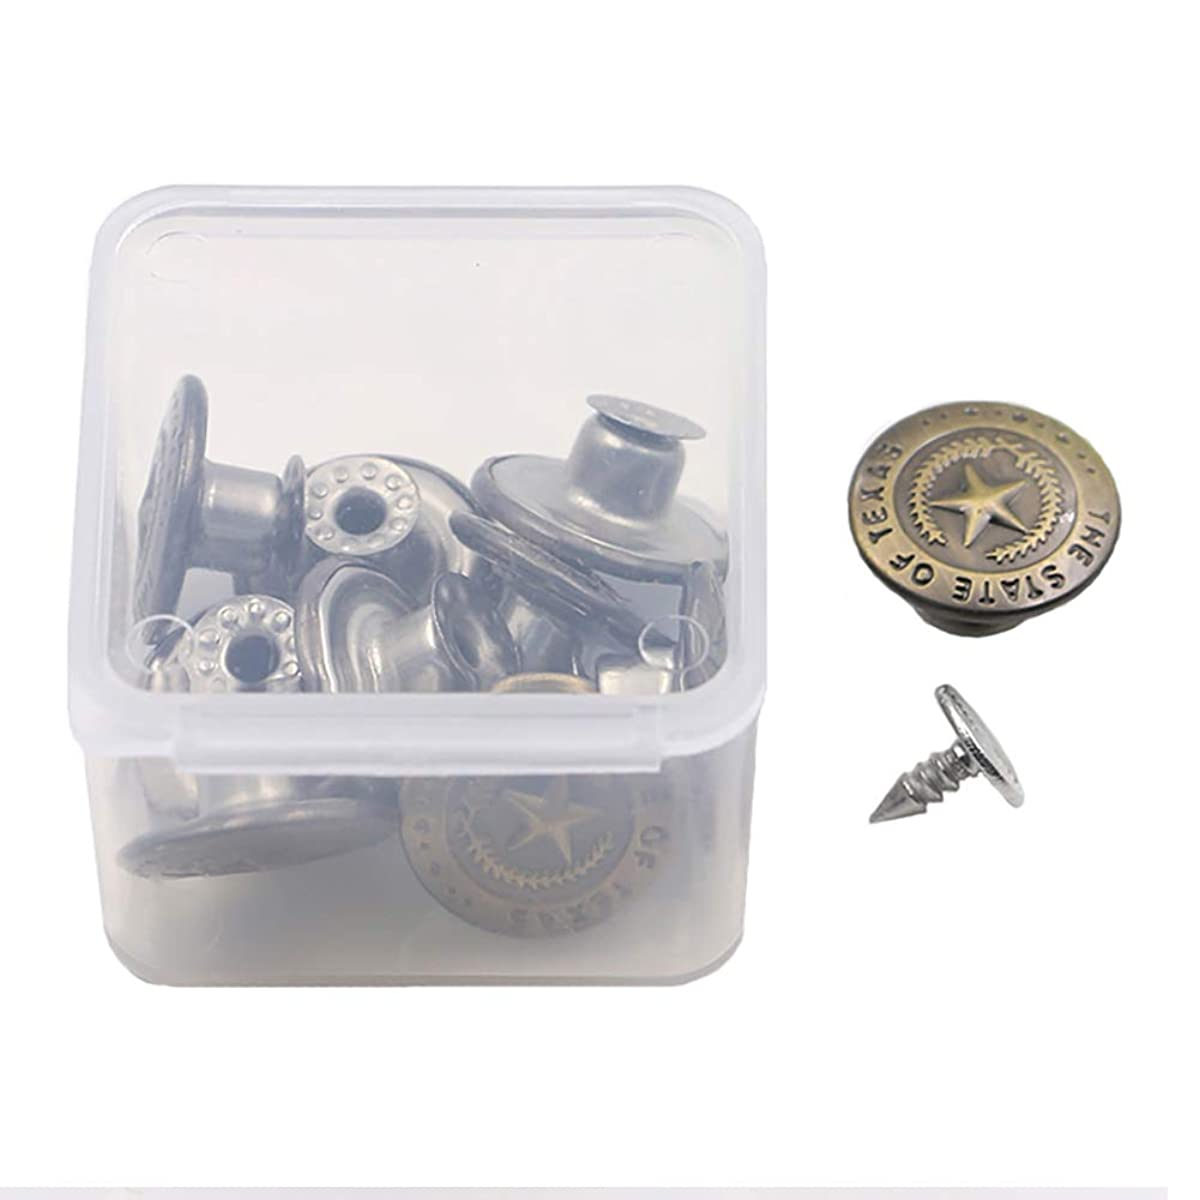 Replacement Buttons Fastener for Jeans - 10 Sets Metal Tack Buttons in a Storage Box - Diameter 17MM(0.67 Inch) (Bronze)